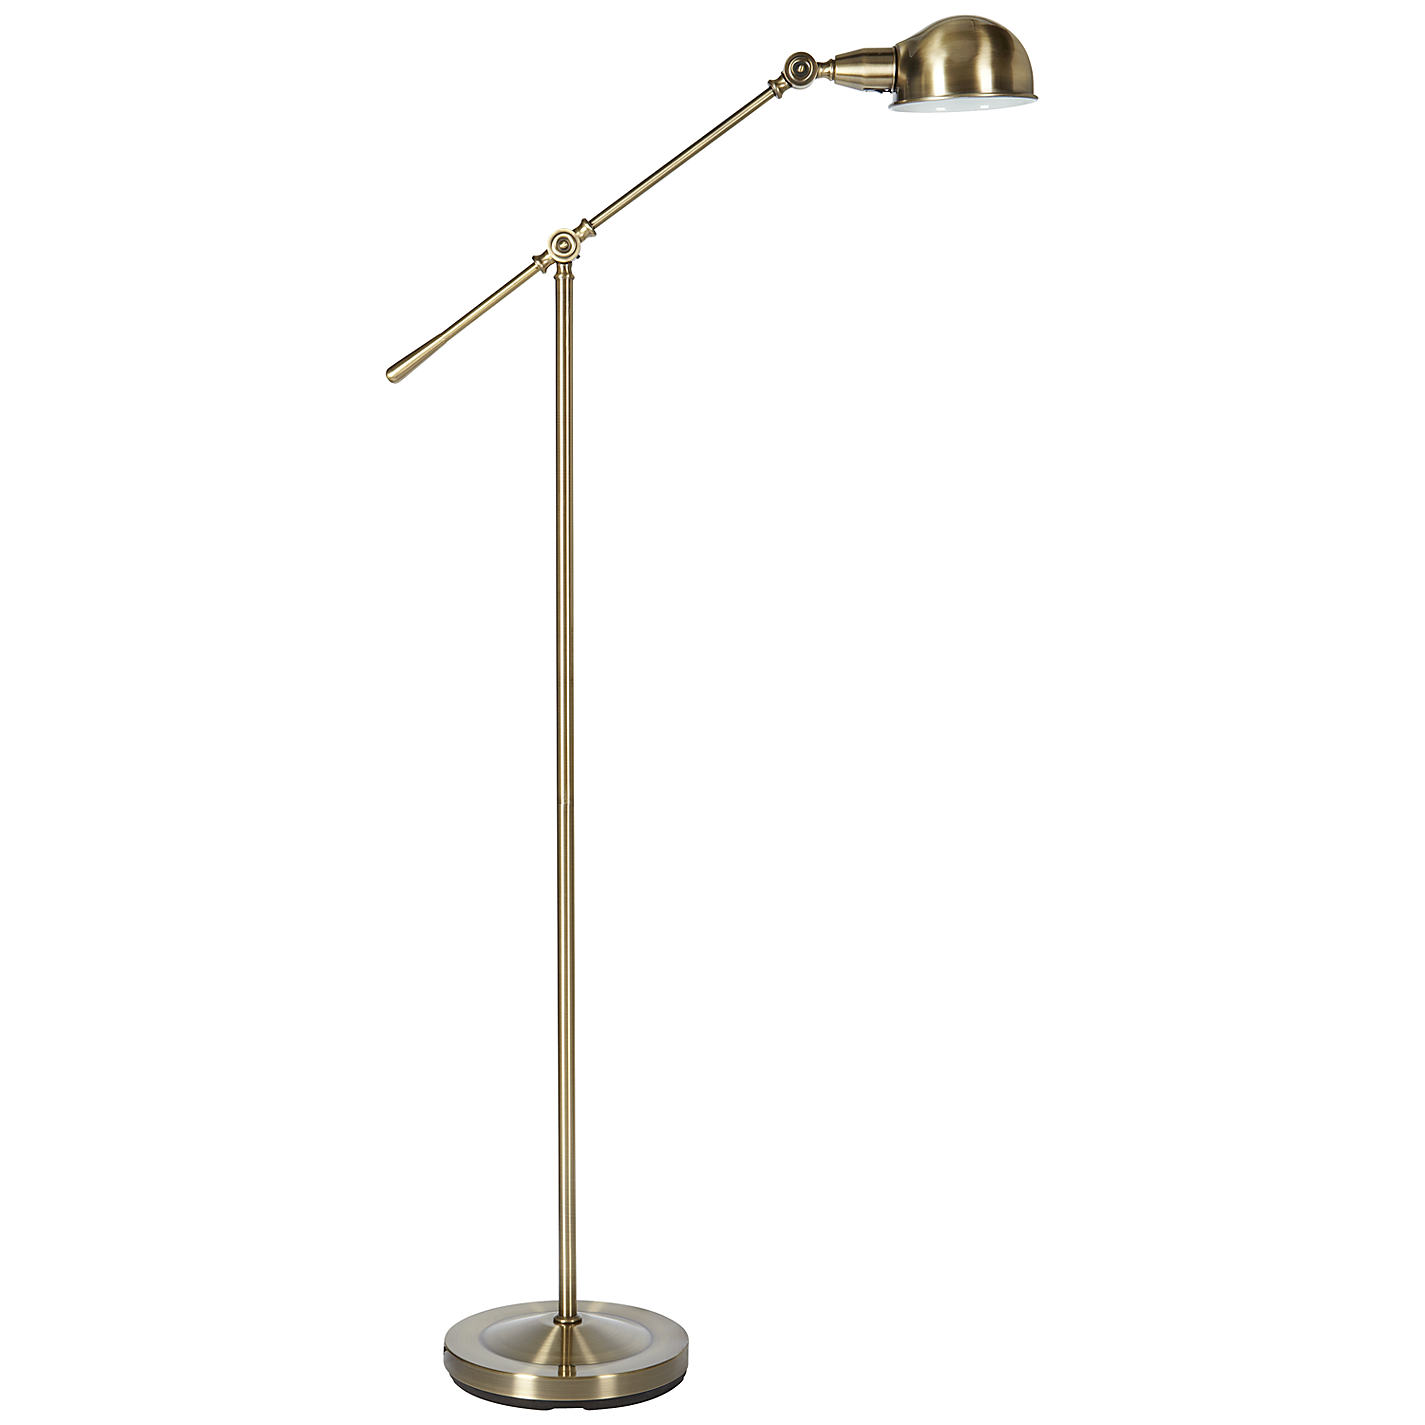 Antique brass floor lamps 10 tips for choosing